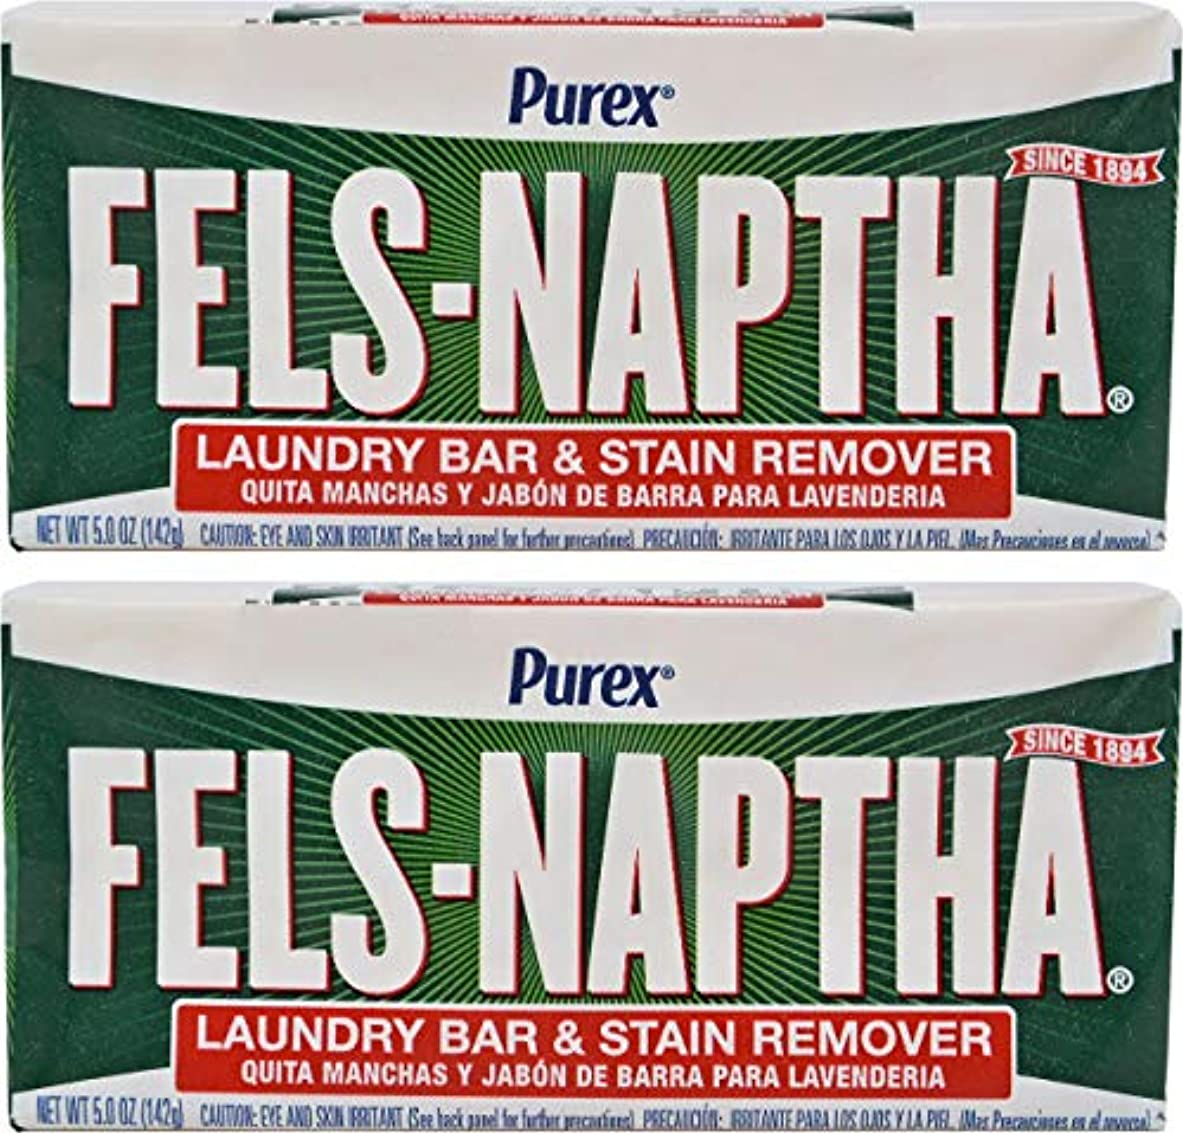 Fels Naptha Heavy Duty Laundry Soap Bar - 5.5 oz - 2 pk by Fels Naptha